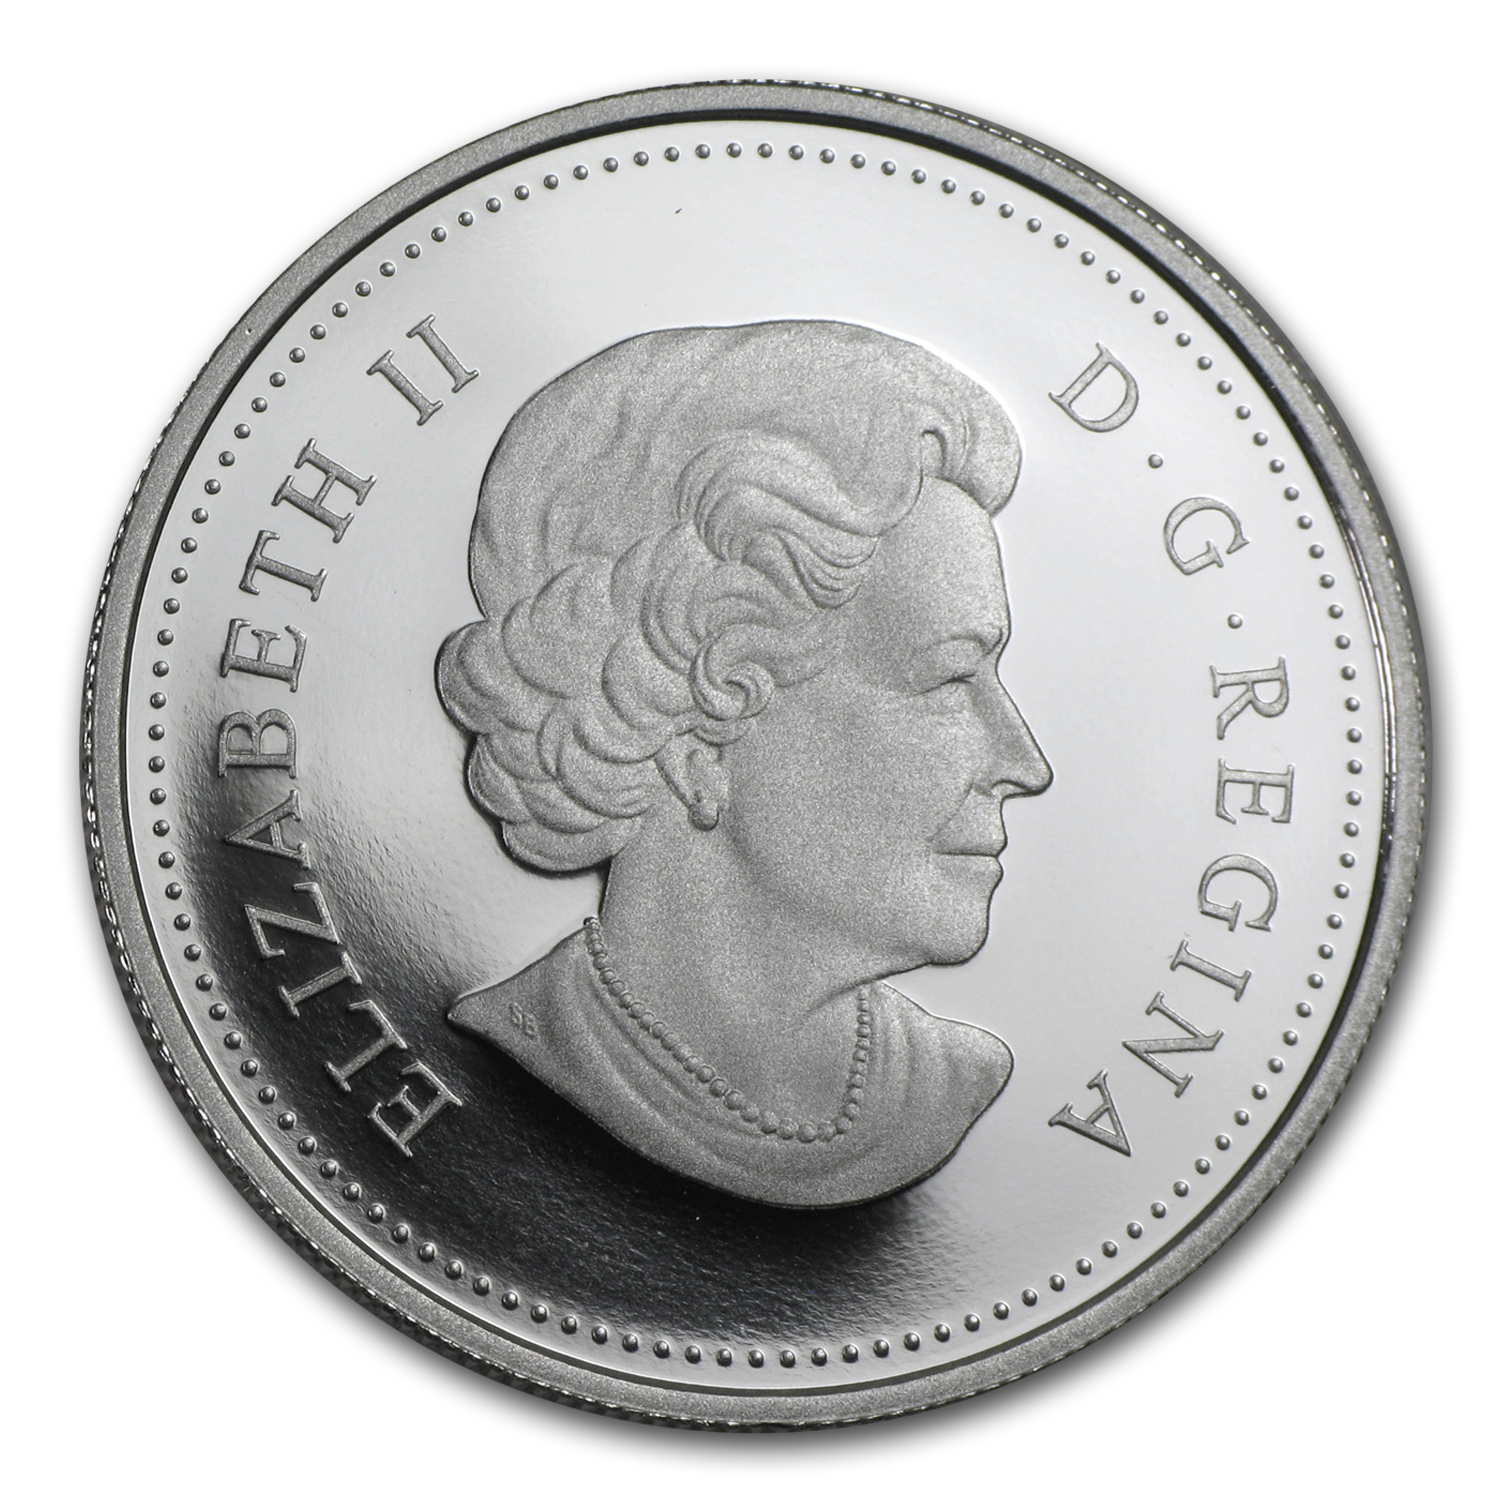 2015 Canada Silver Year of the Sheep Proof (Colorized)